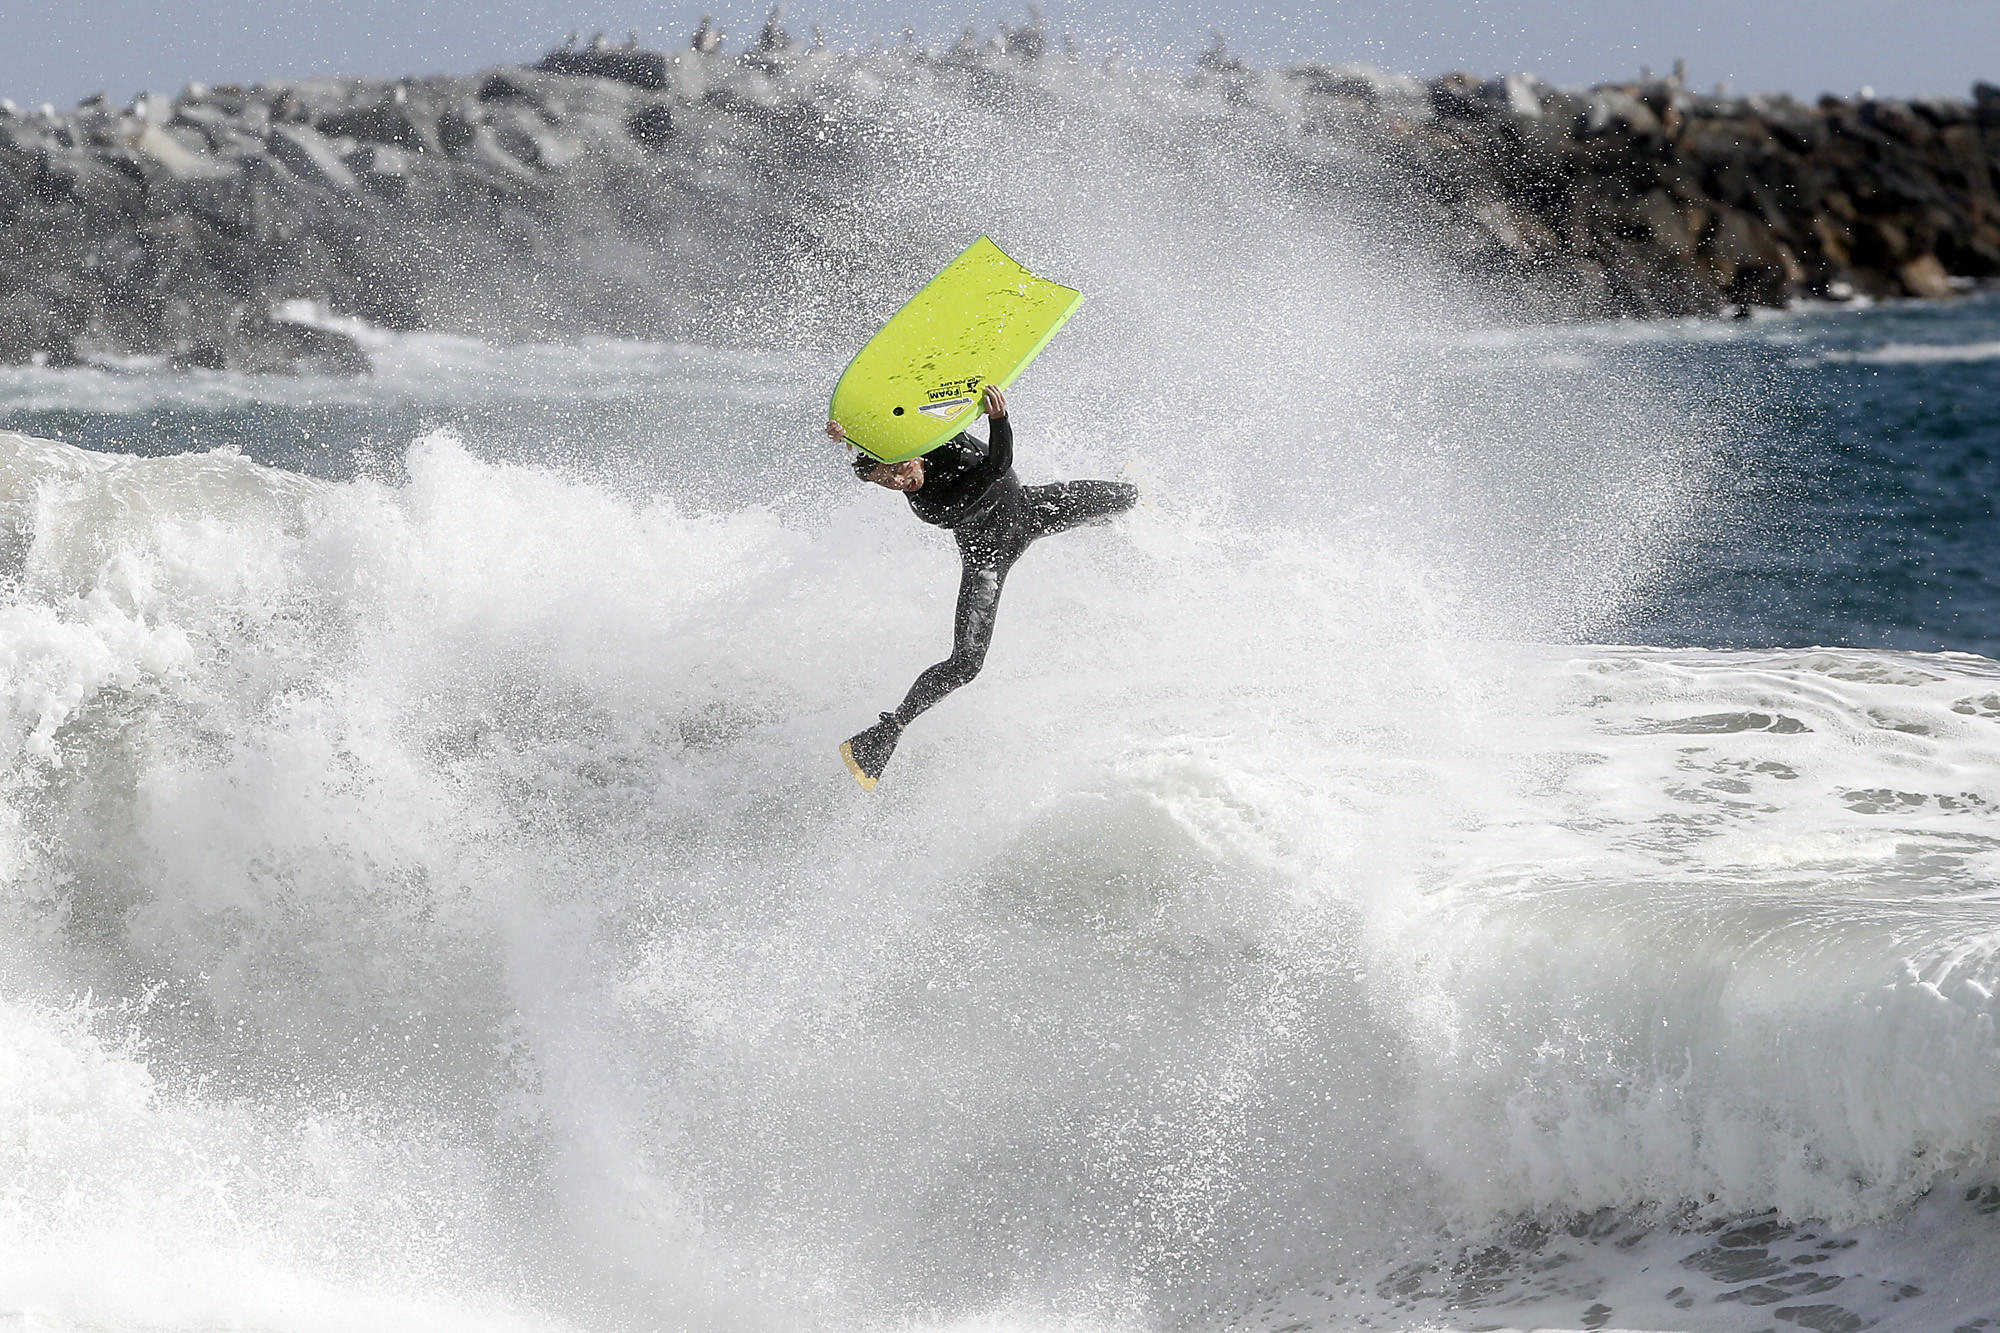 A bodyboarder loses control coming off a wave at The Wedge in Newport Beach.